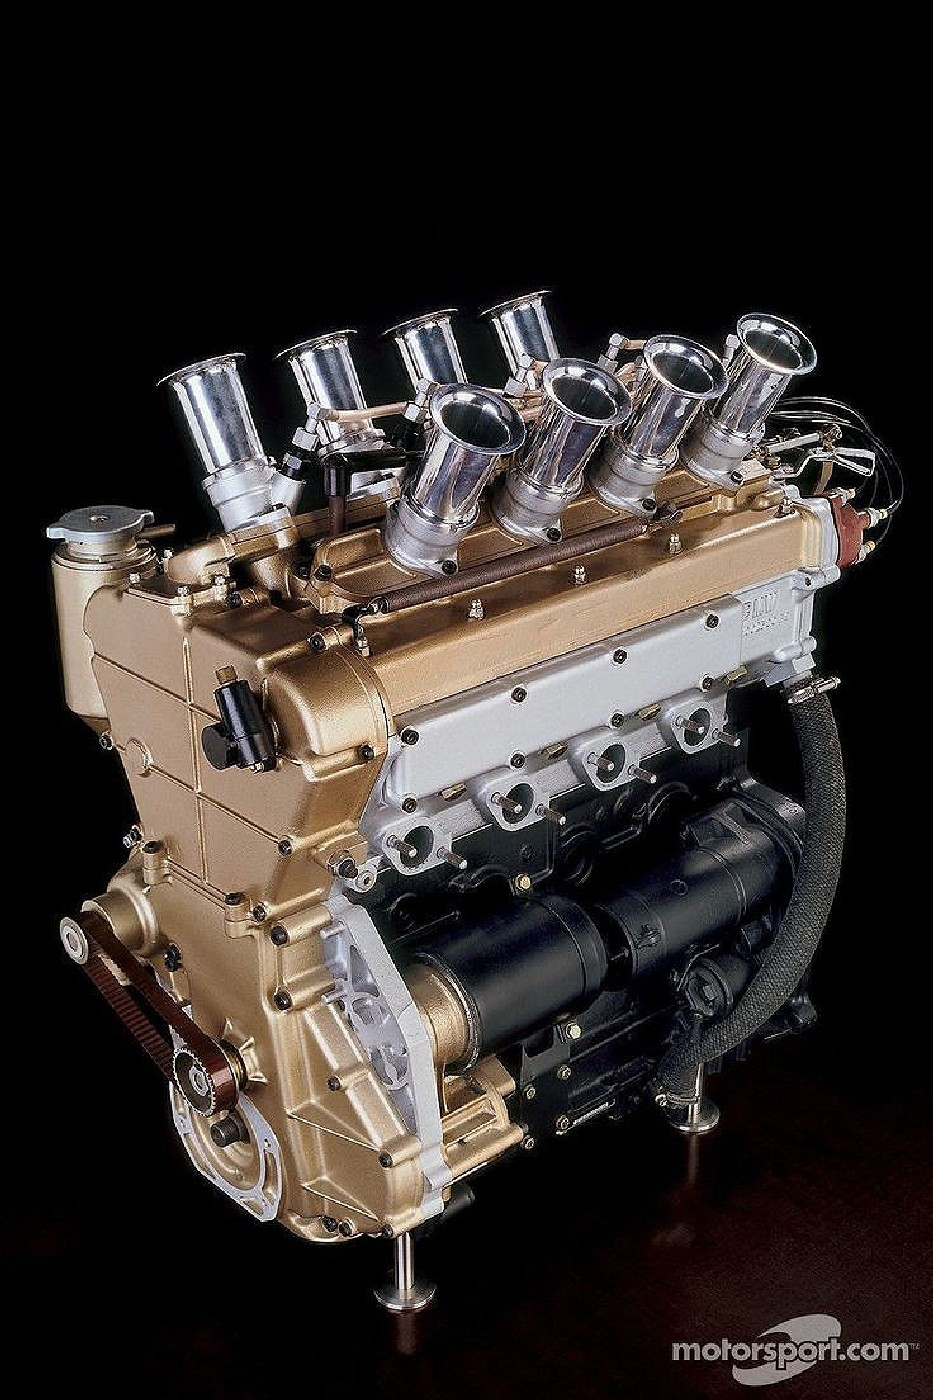 the m10 bmw s most successful engine bmw m10 radial valve engine jpg views 21989 size 328 3 kb